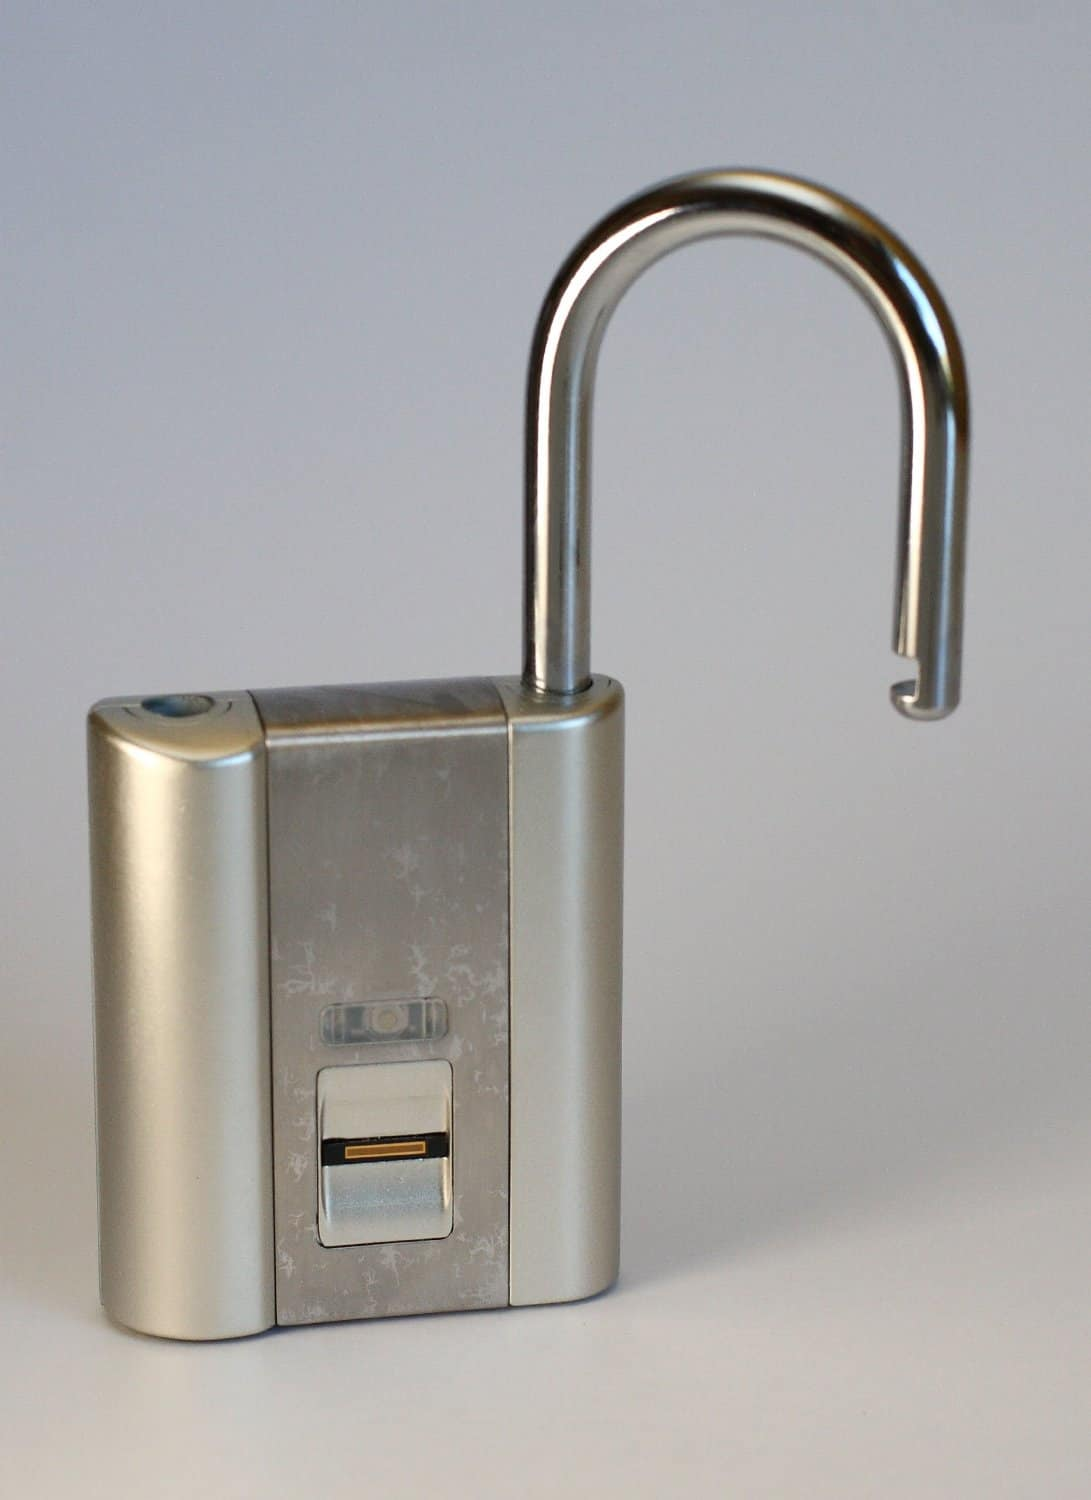 iFingerLock Fingerprint Biometric Padlock Fits Most School Lockers